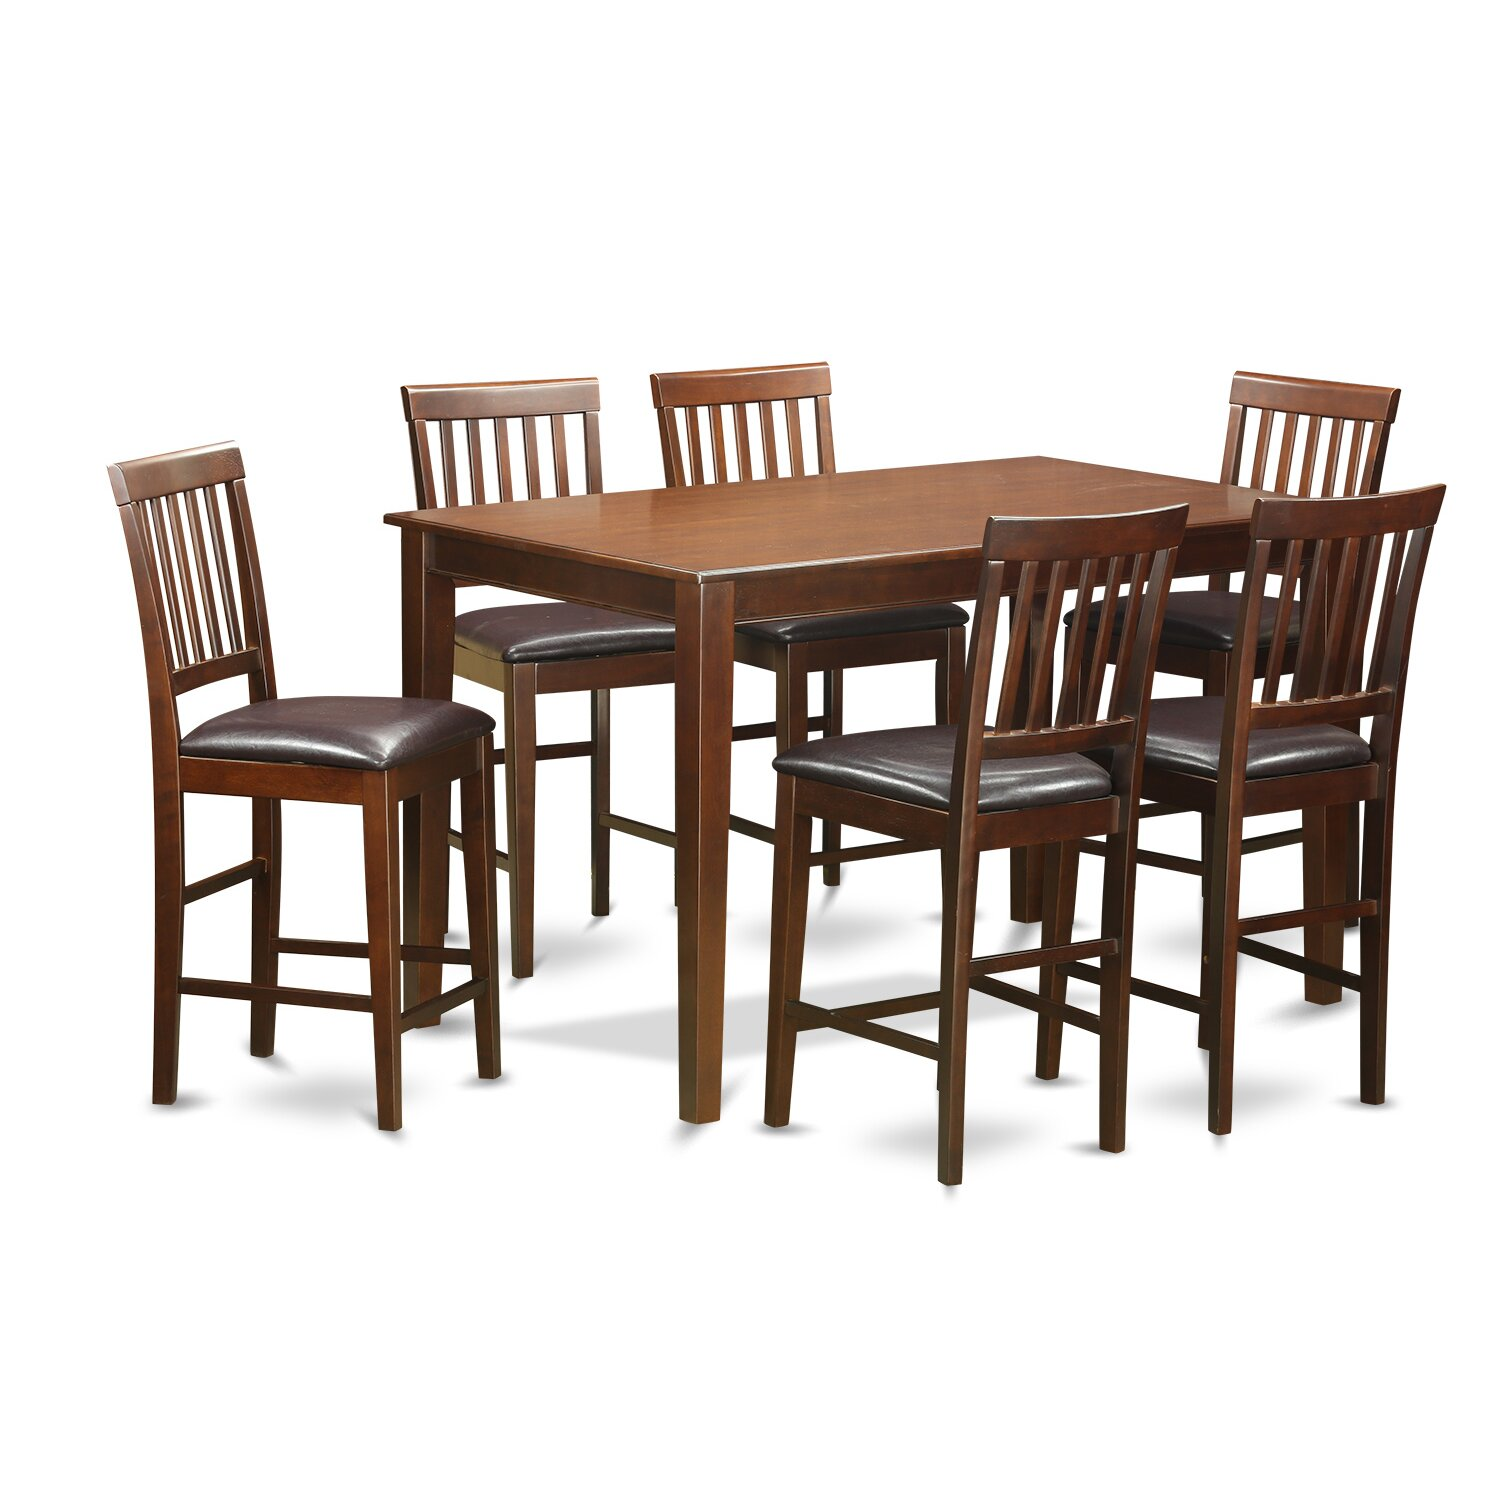 7 Piece Counter Height Dining Room Sets: Wooden Importers 7 Piece Counter Height Dining Set